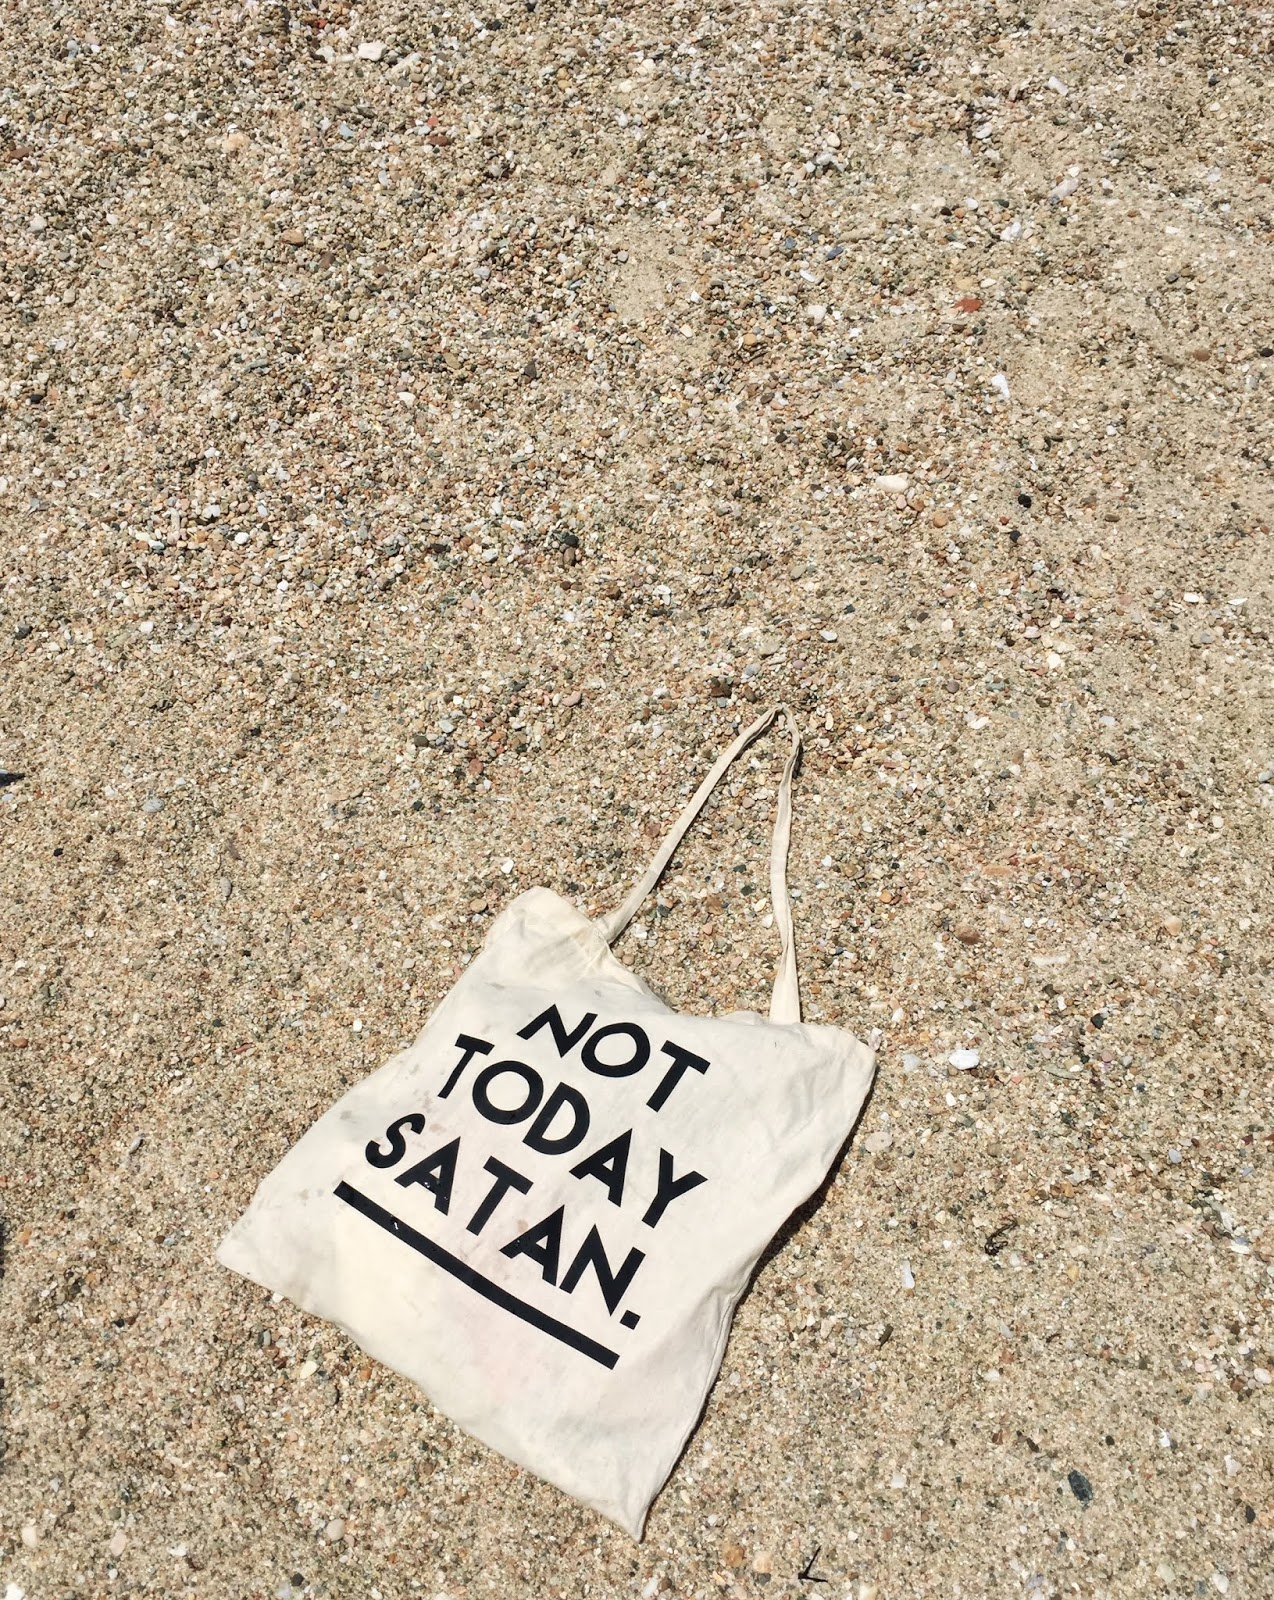 not today satan, bianca del rio, sand, beach, tote bag, rupaul, drag race